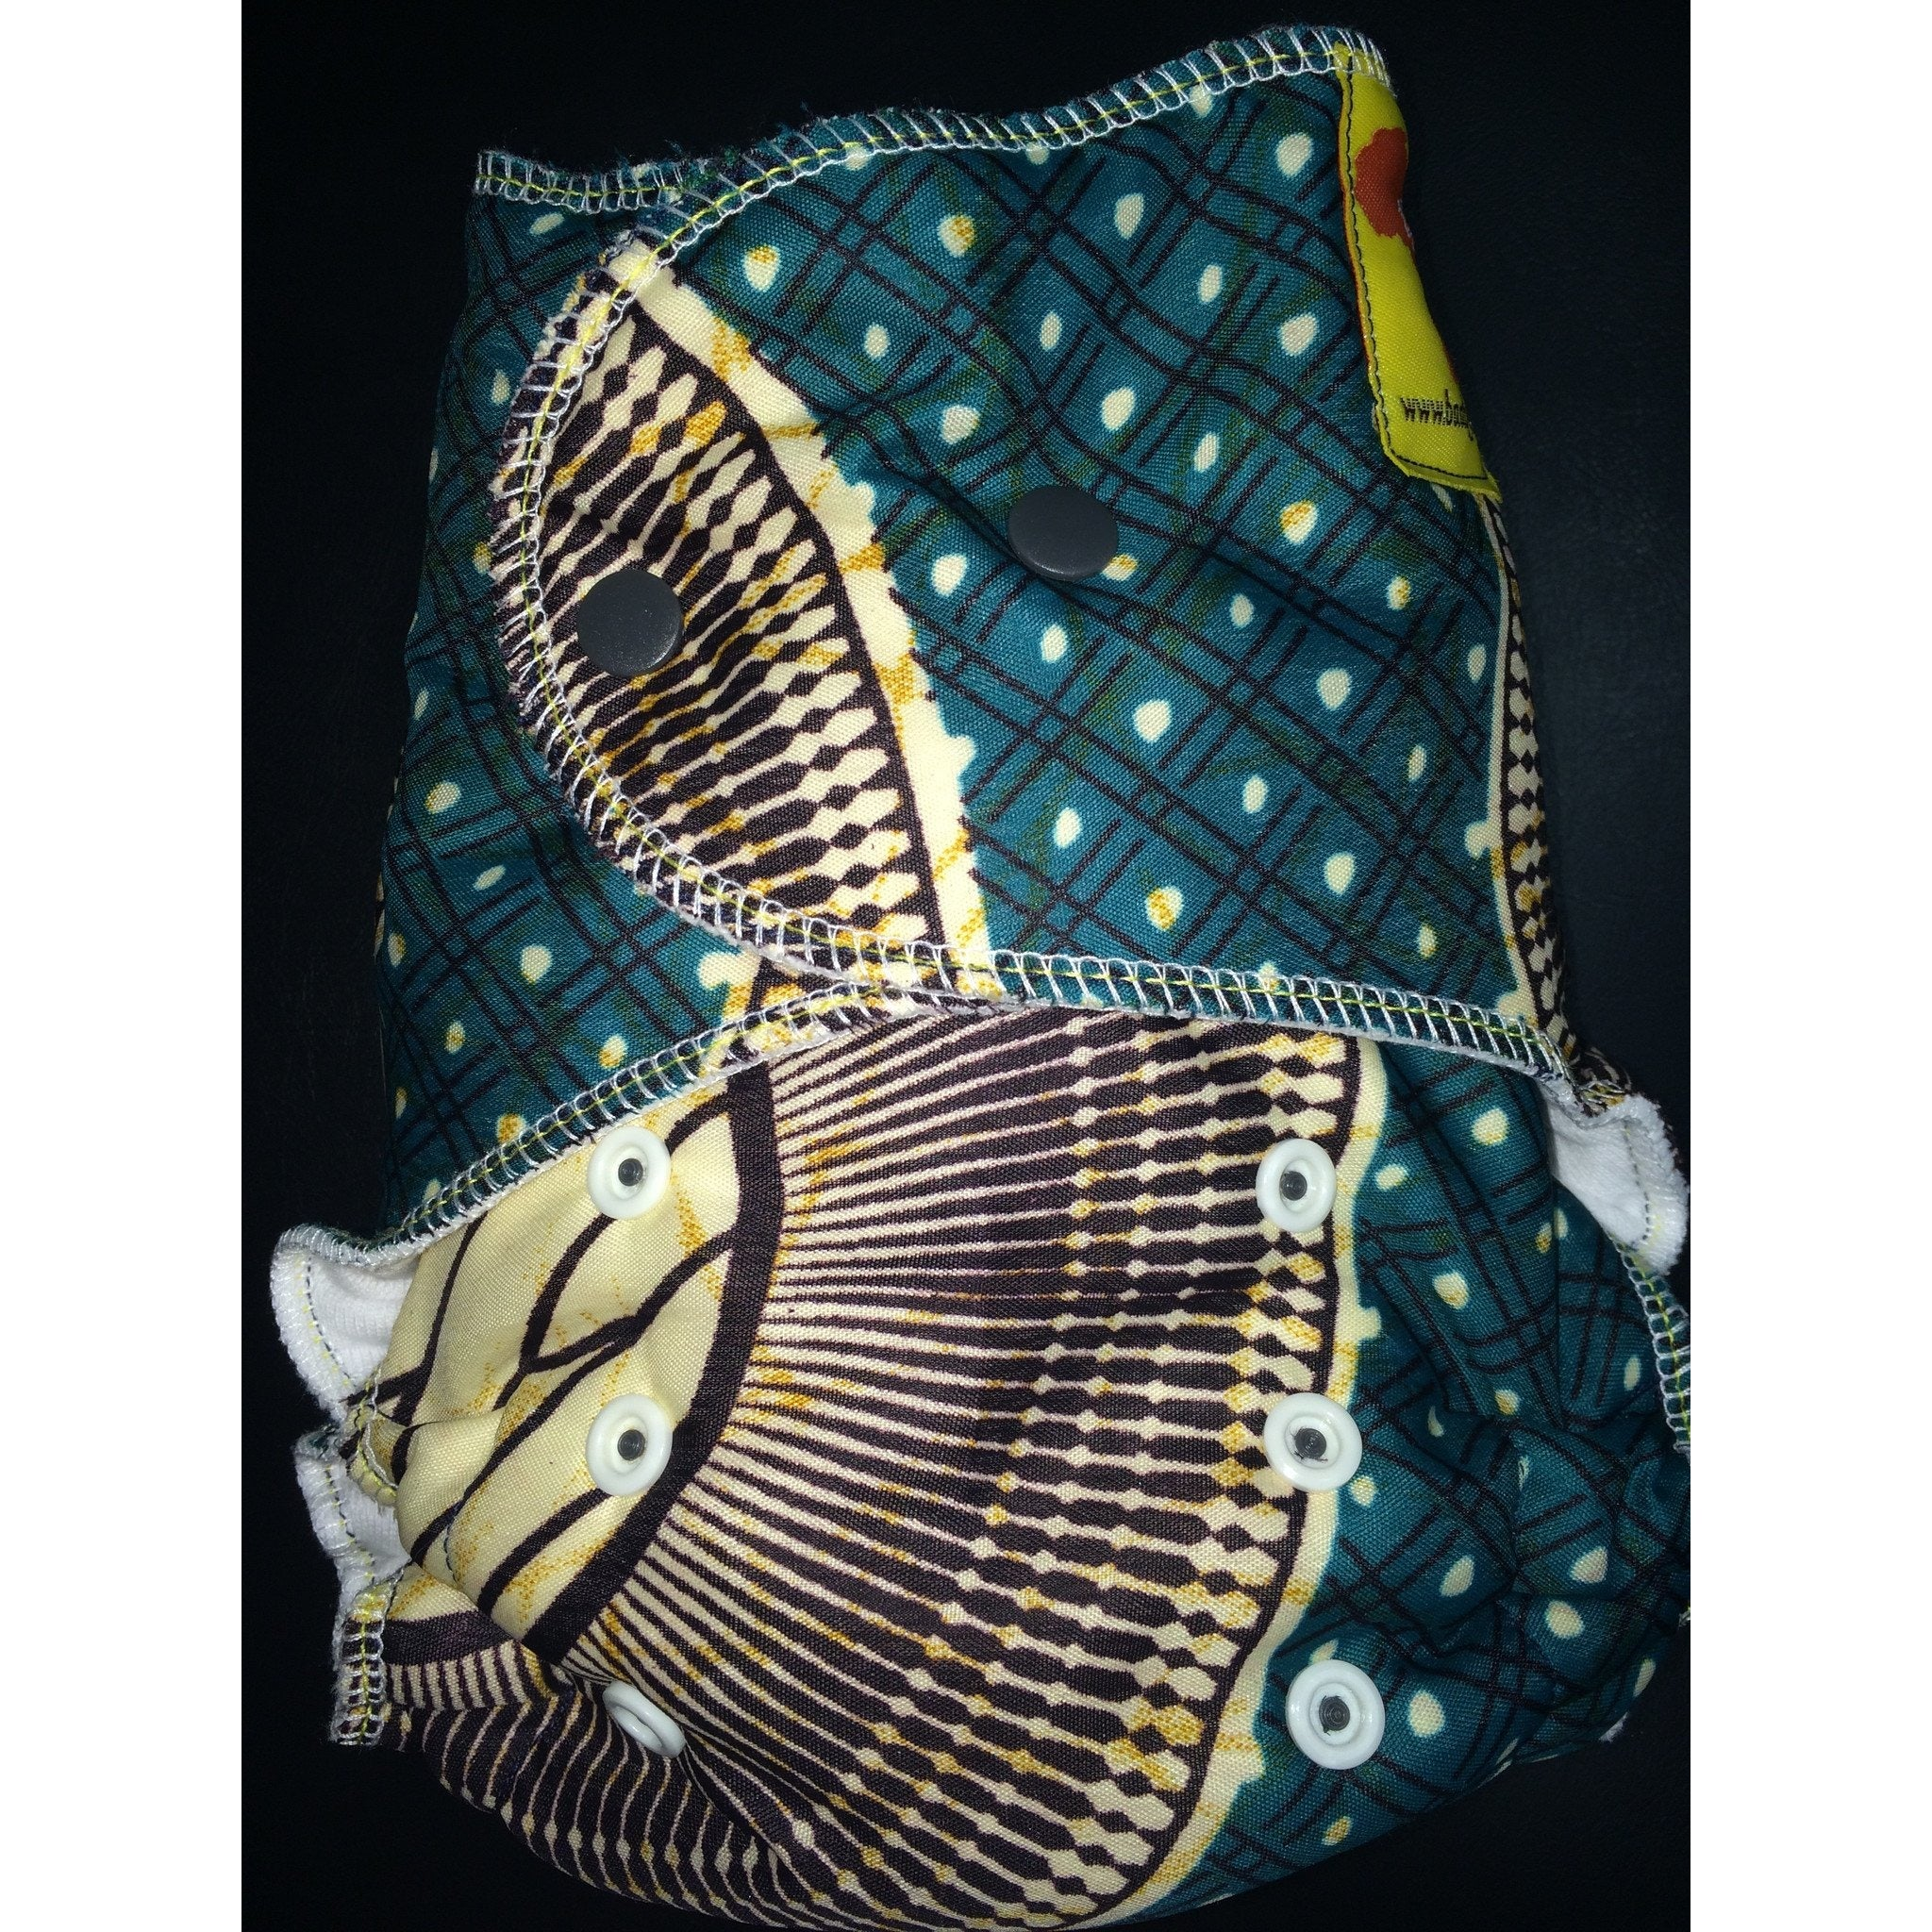 Baaby Fitted Diaper - African Print 3